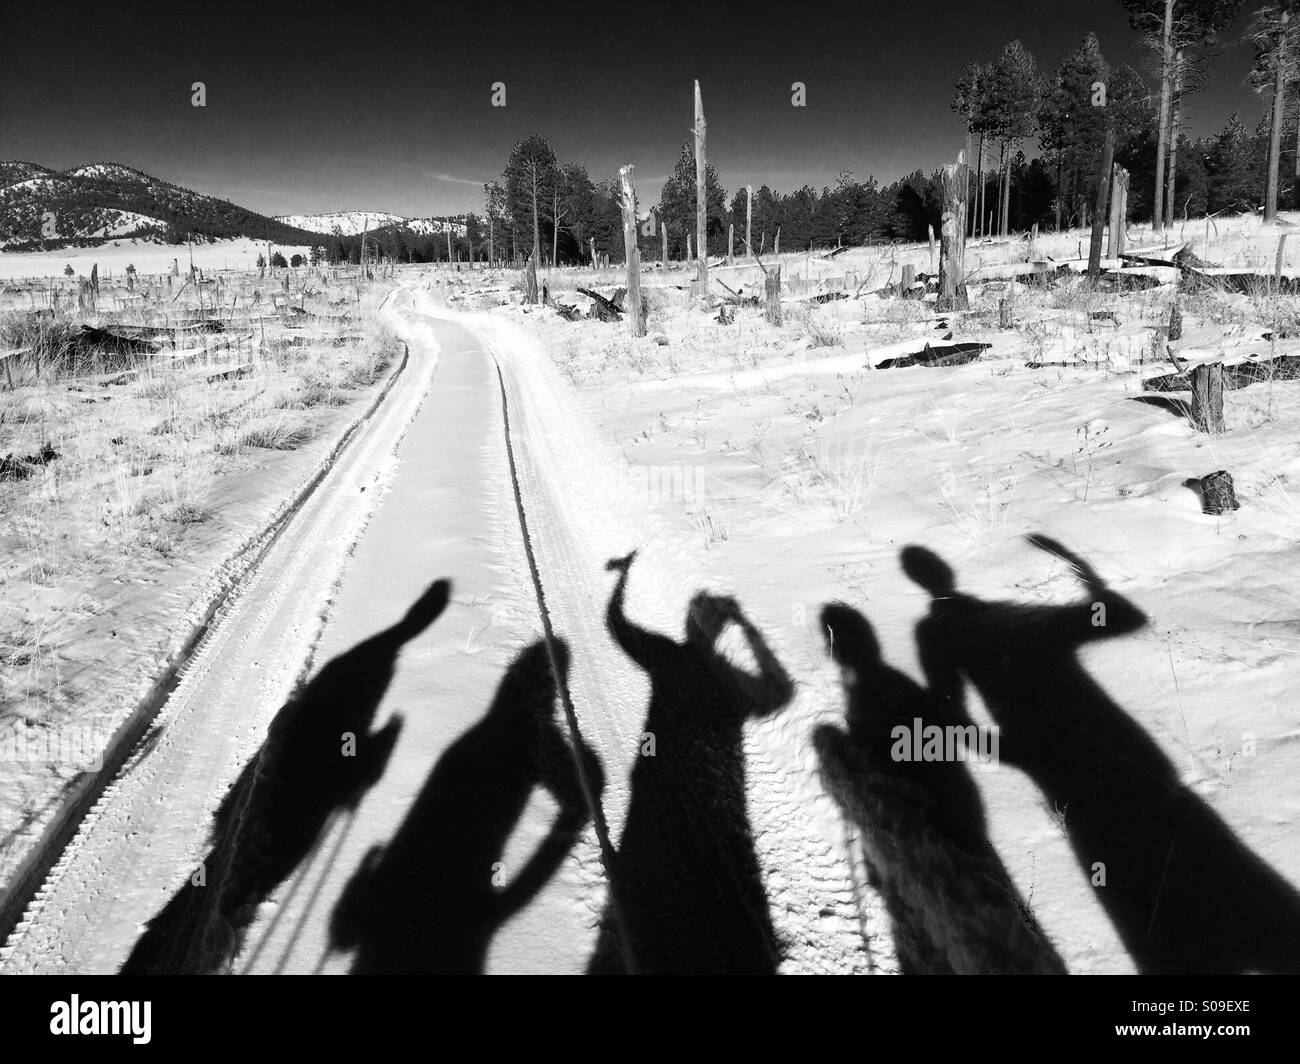 Human shadows on snow covered Coconino National Forest, Kendrick Park, Arizona, as the team takes a quick break - Stock Image